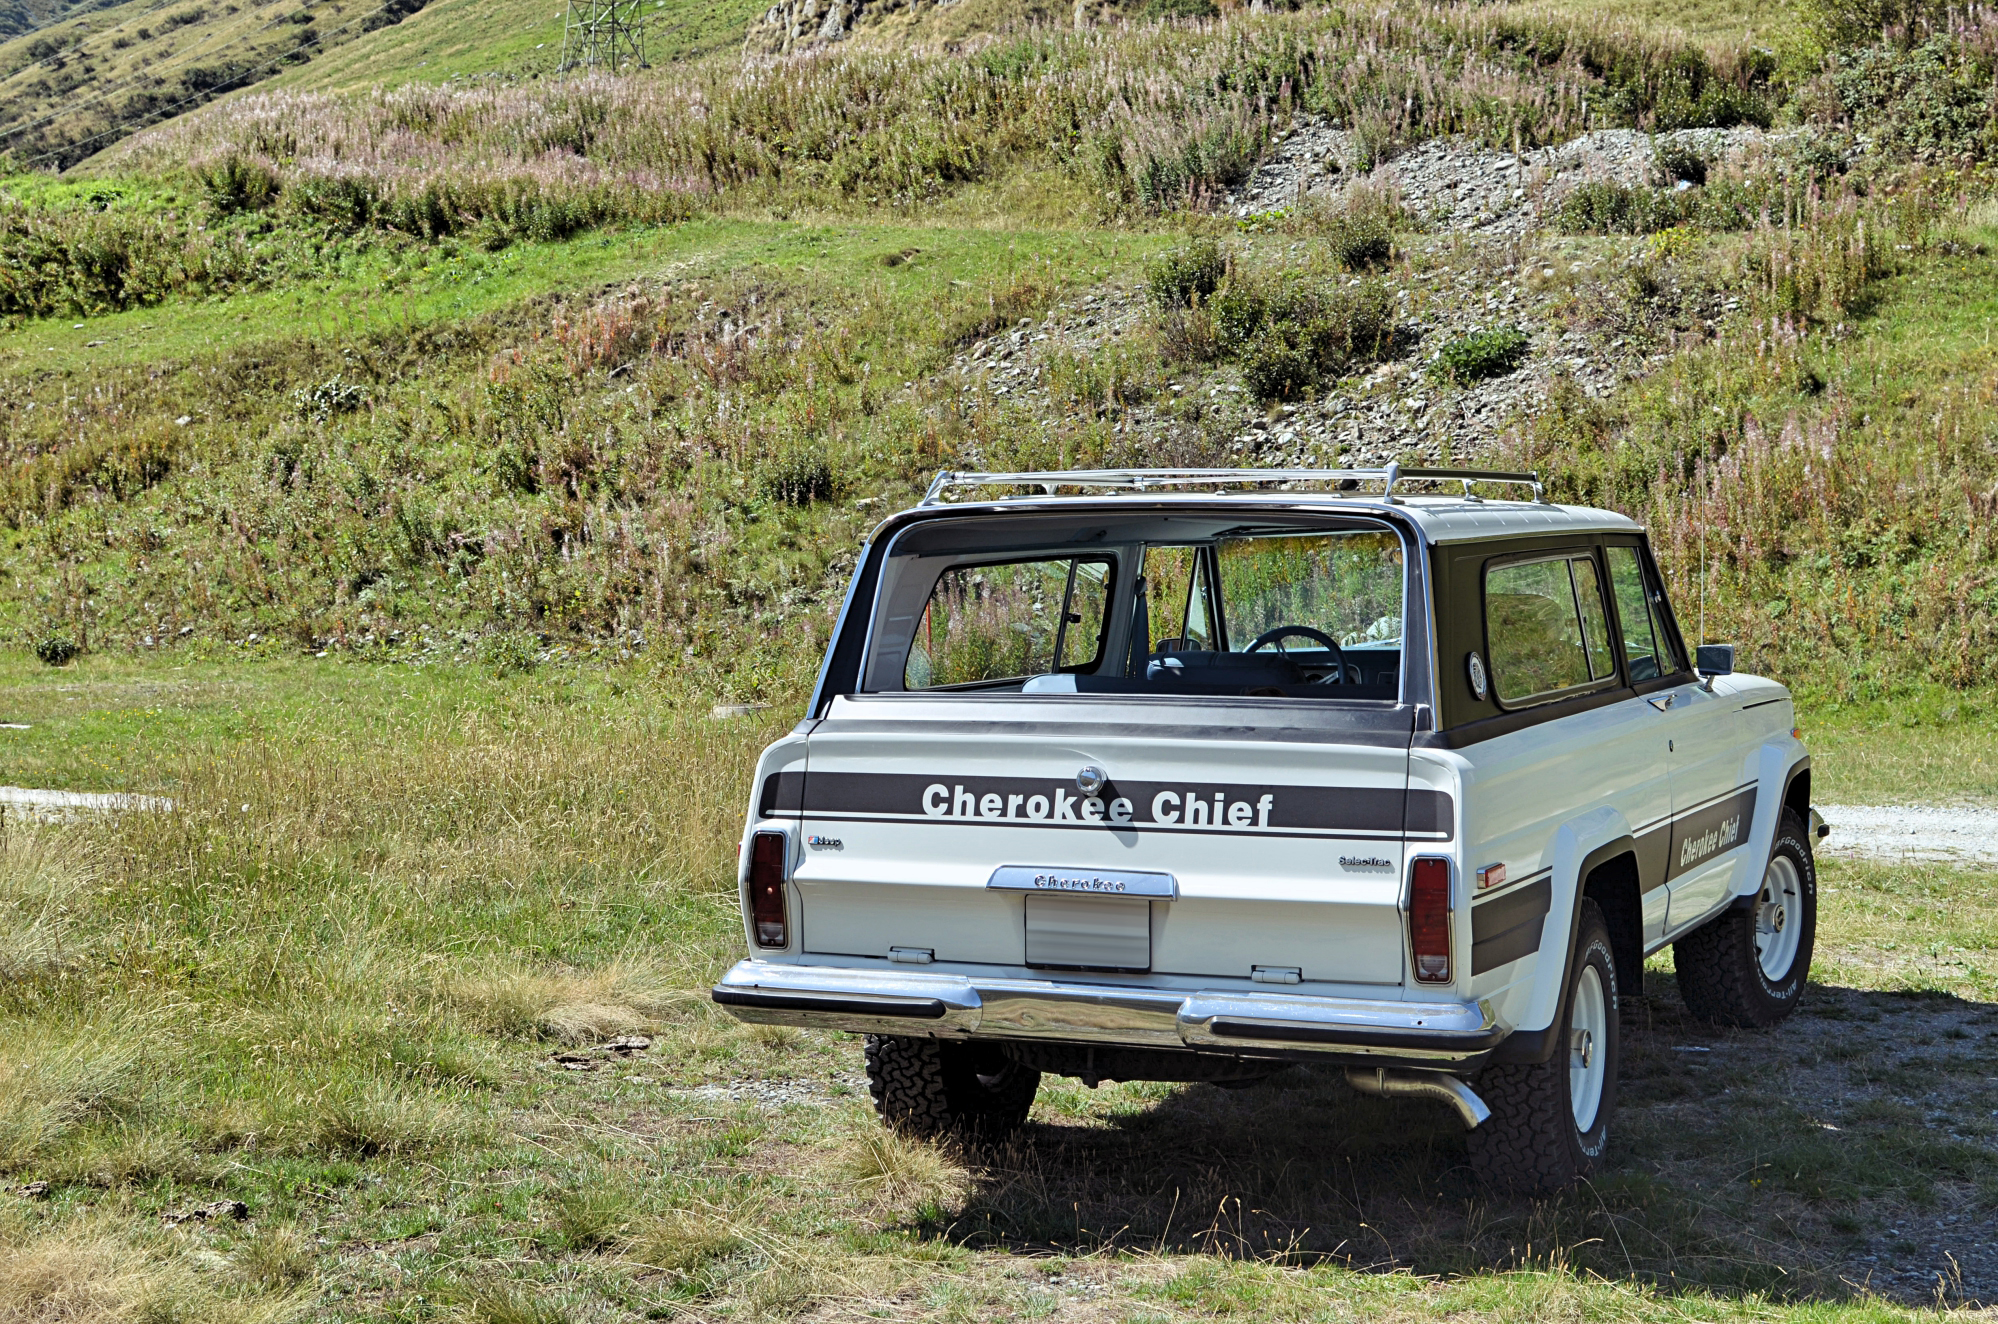 jeep-cherokee-in-the-mountain-swiss-2 - Copie.jpg